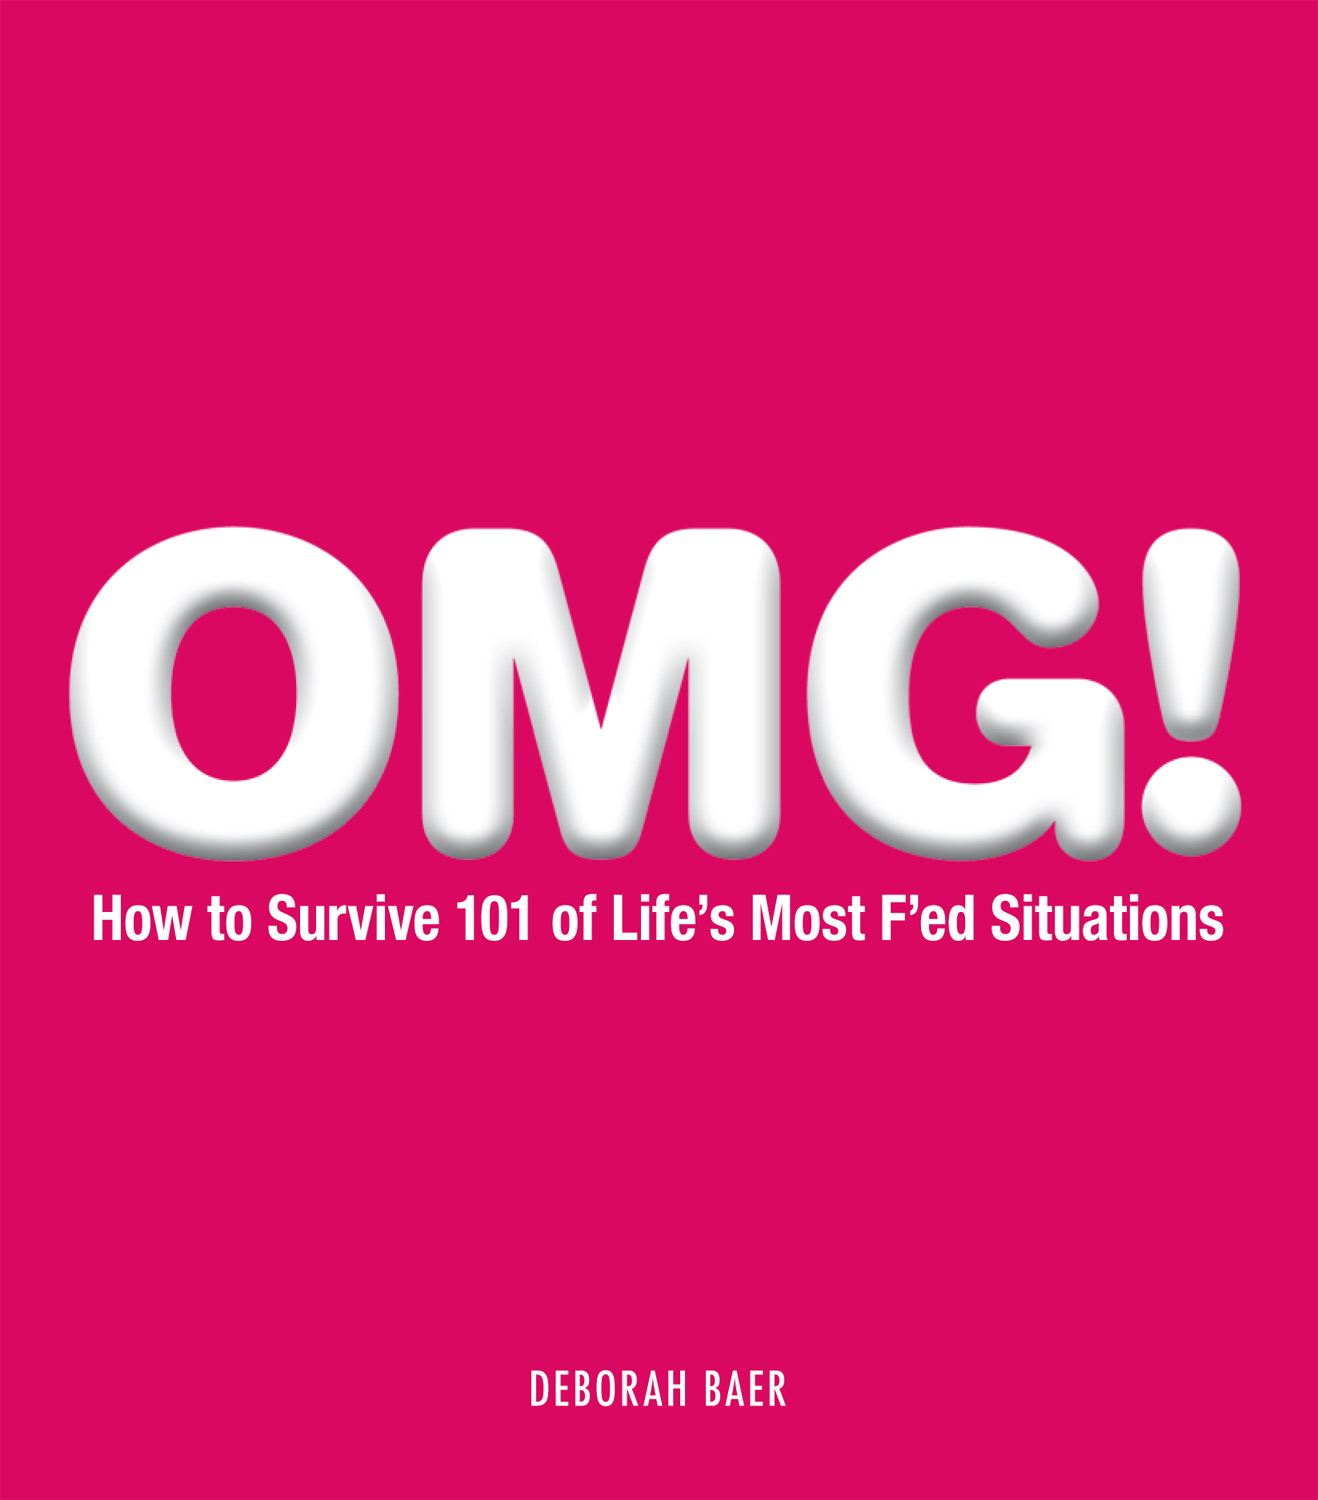 OMG!: How to Survive 101 of Life's Most F'ed Situations